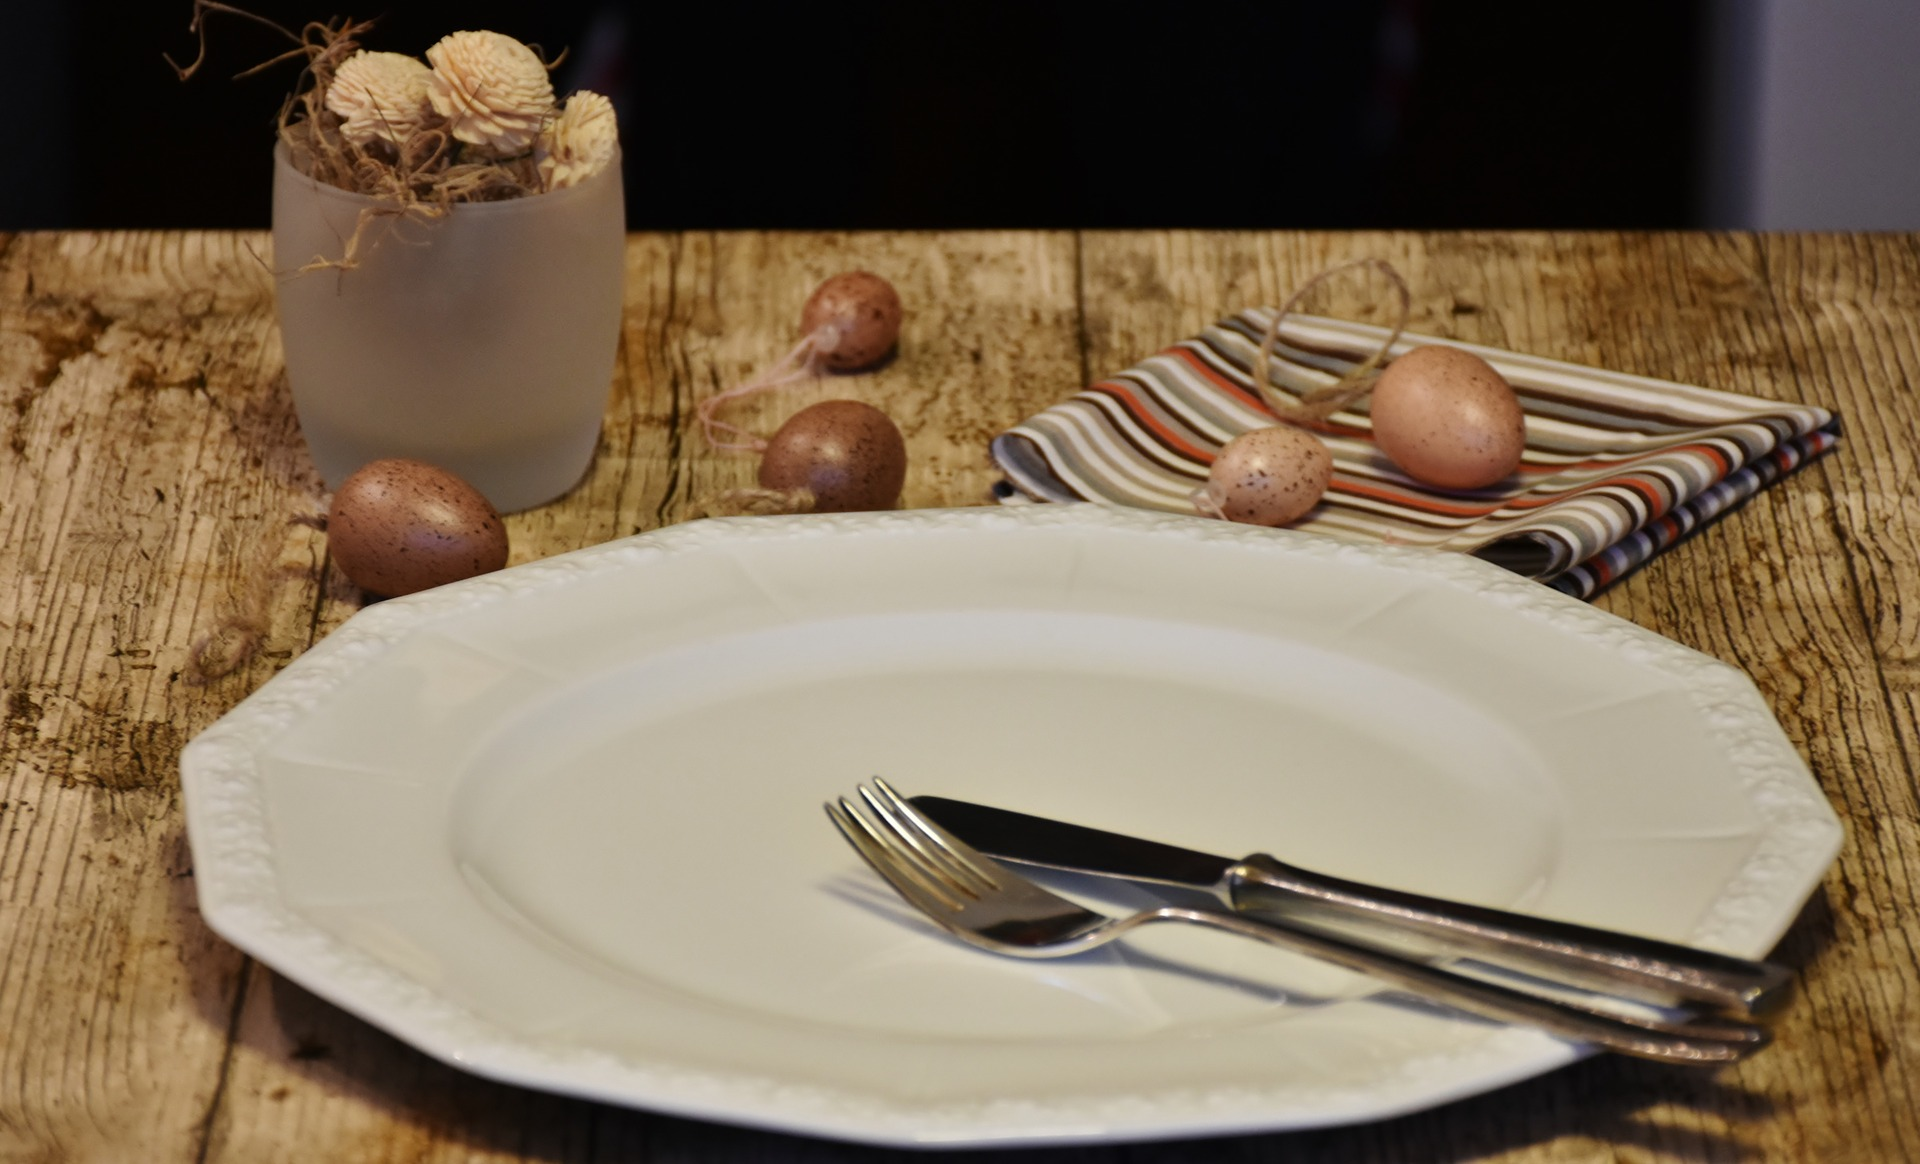 Empty plate and cutlery on a wooden table.